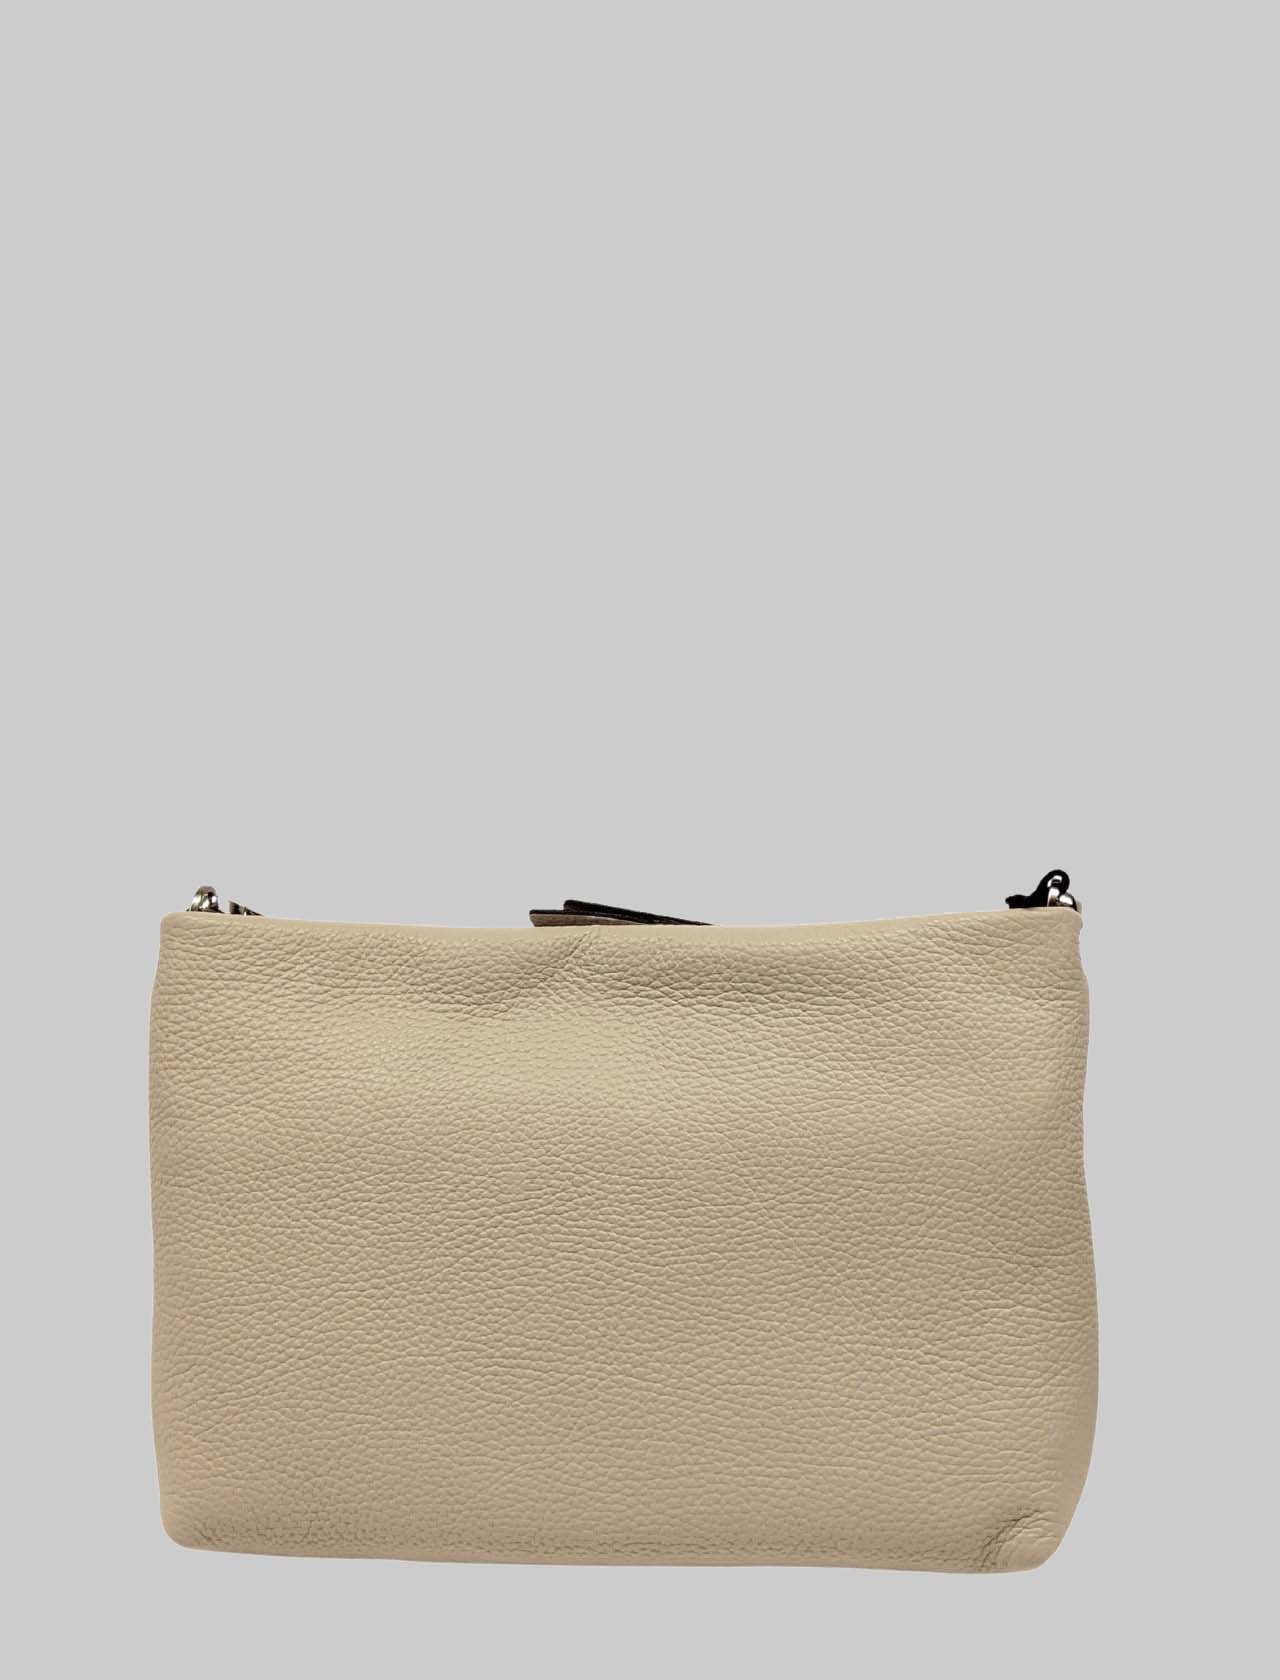 Brenda Shoulder Bag In Cream Leather With Matching Chain And Adjustable And Removable Shoulder Strap Gianni Chiarini | Bags and backpacks | BS82652971